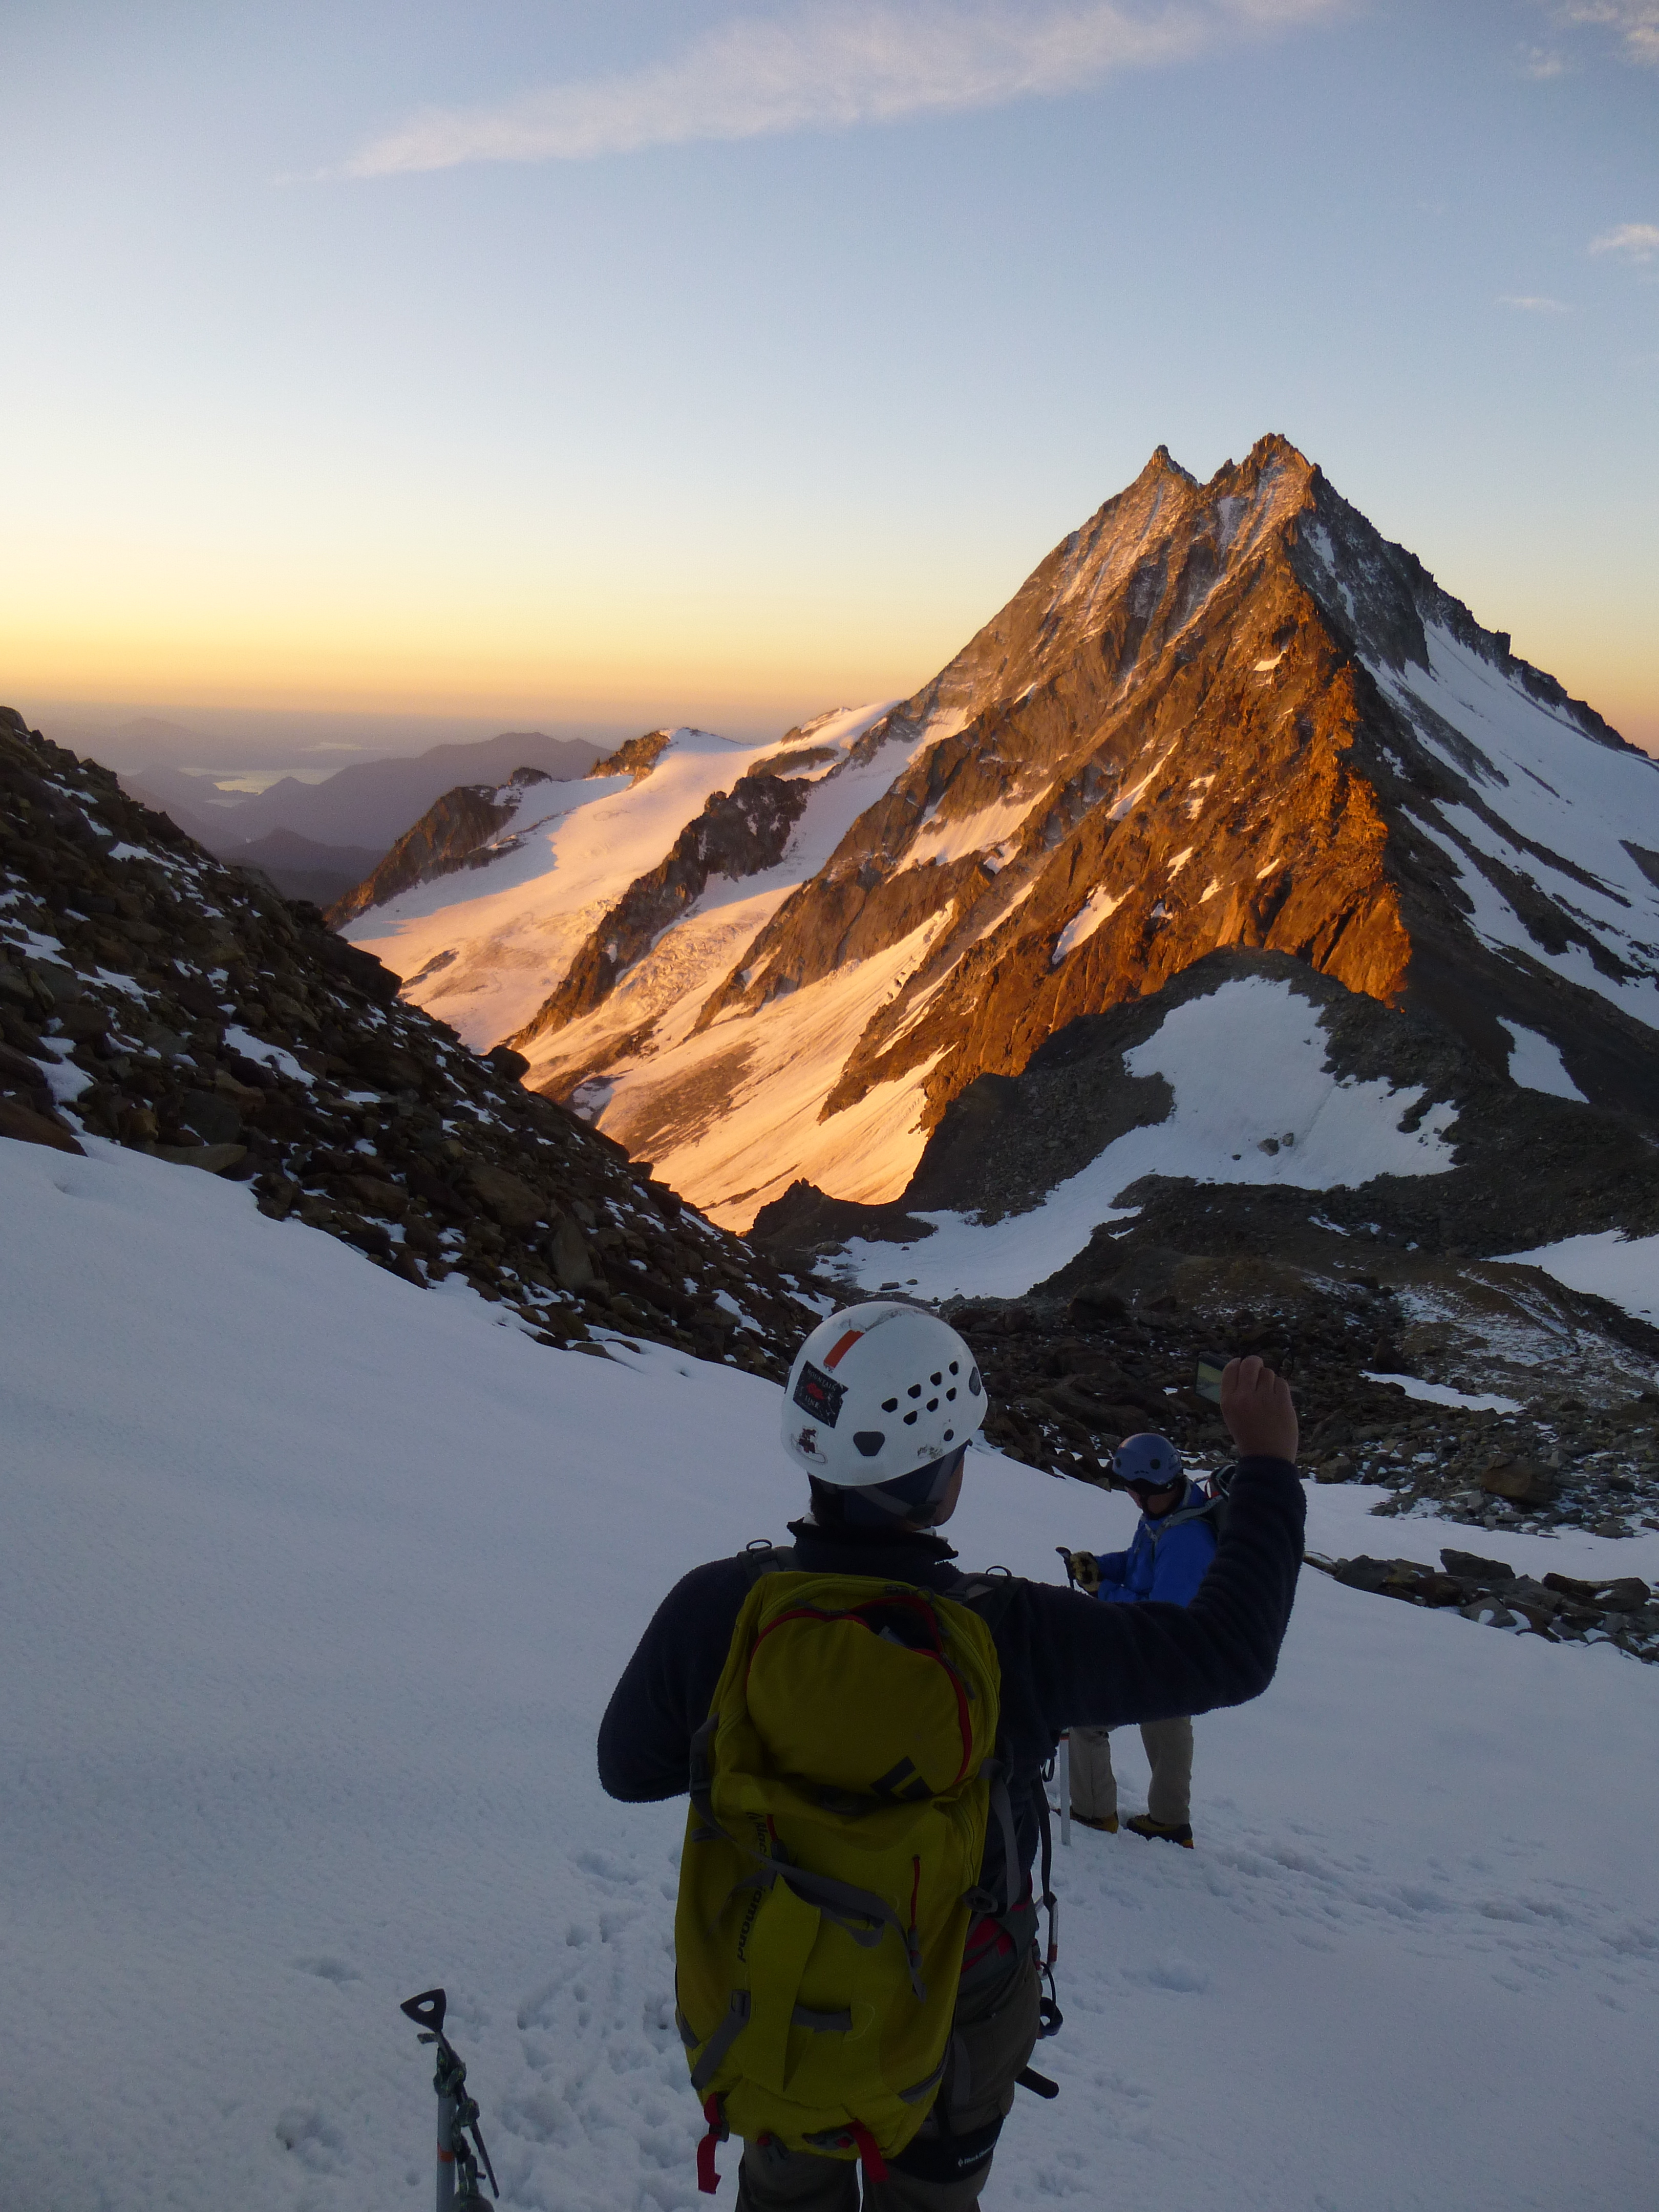 sunrise above the Allmageller Hut, nearing the start of the climbing